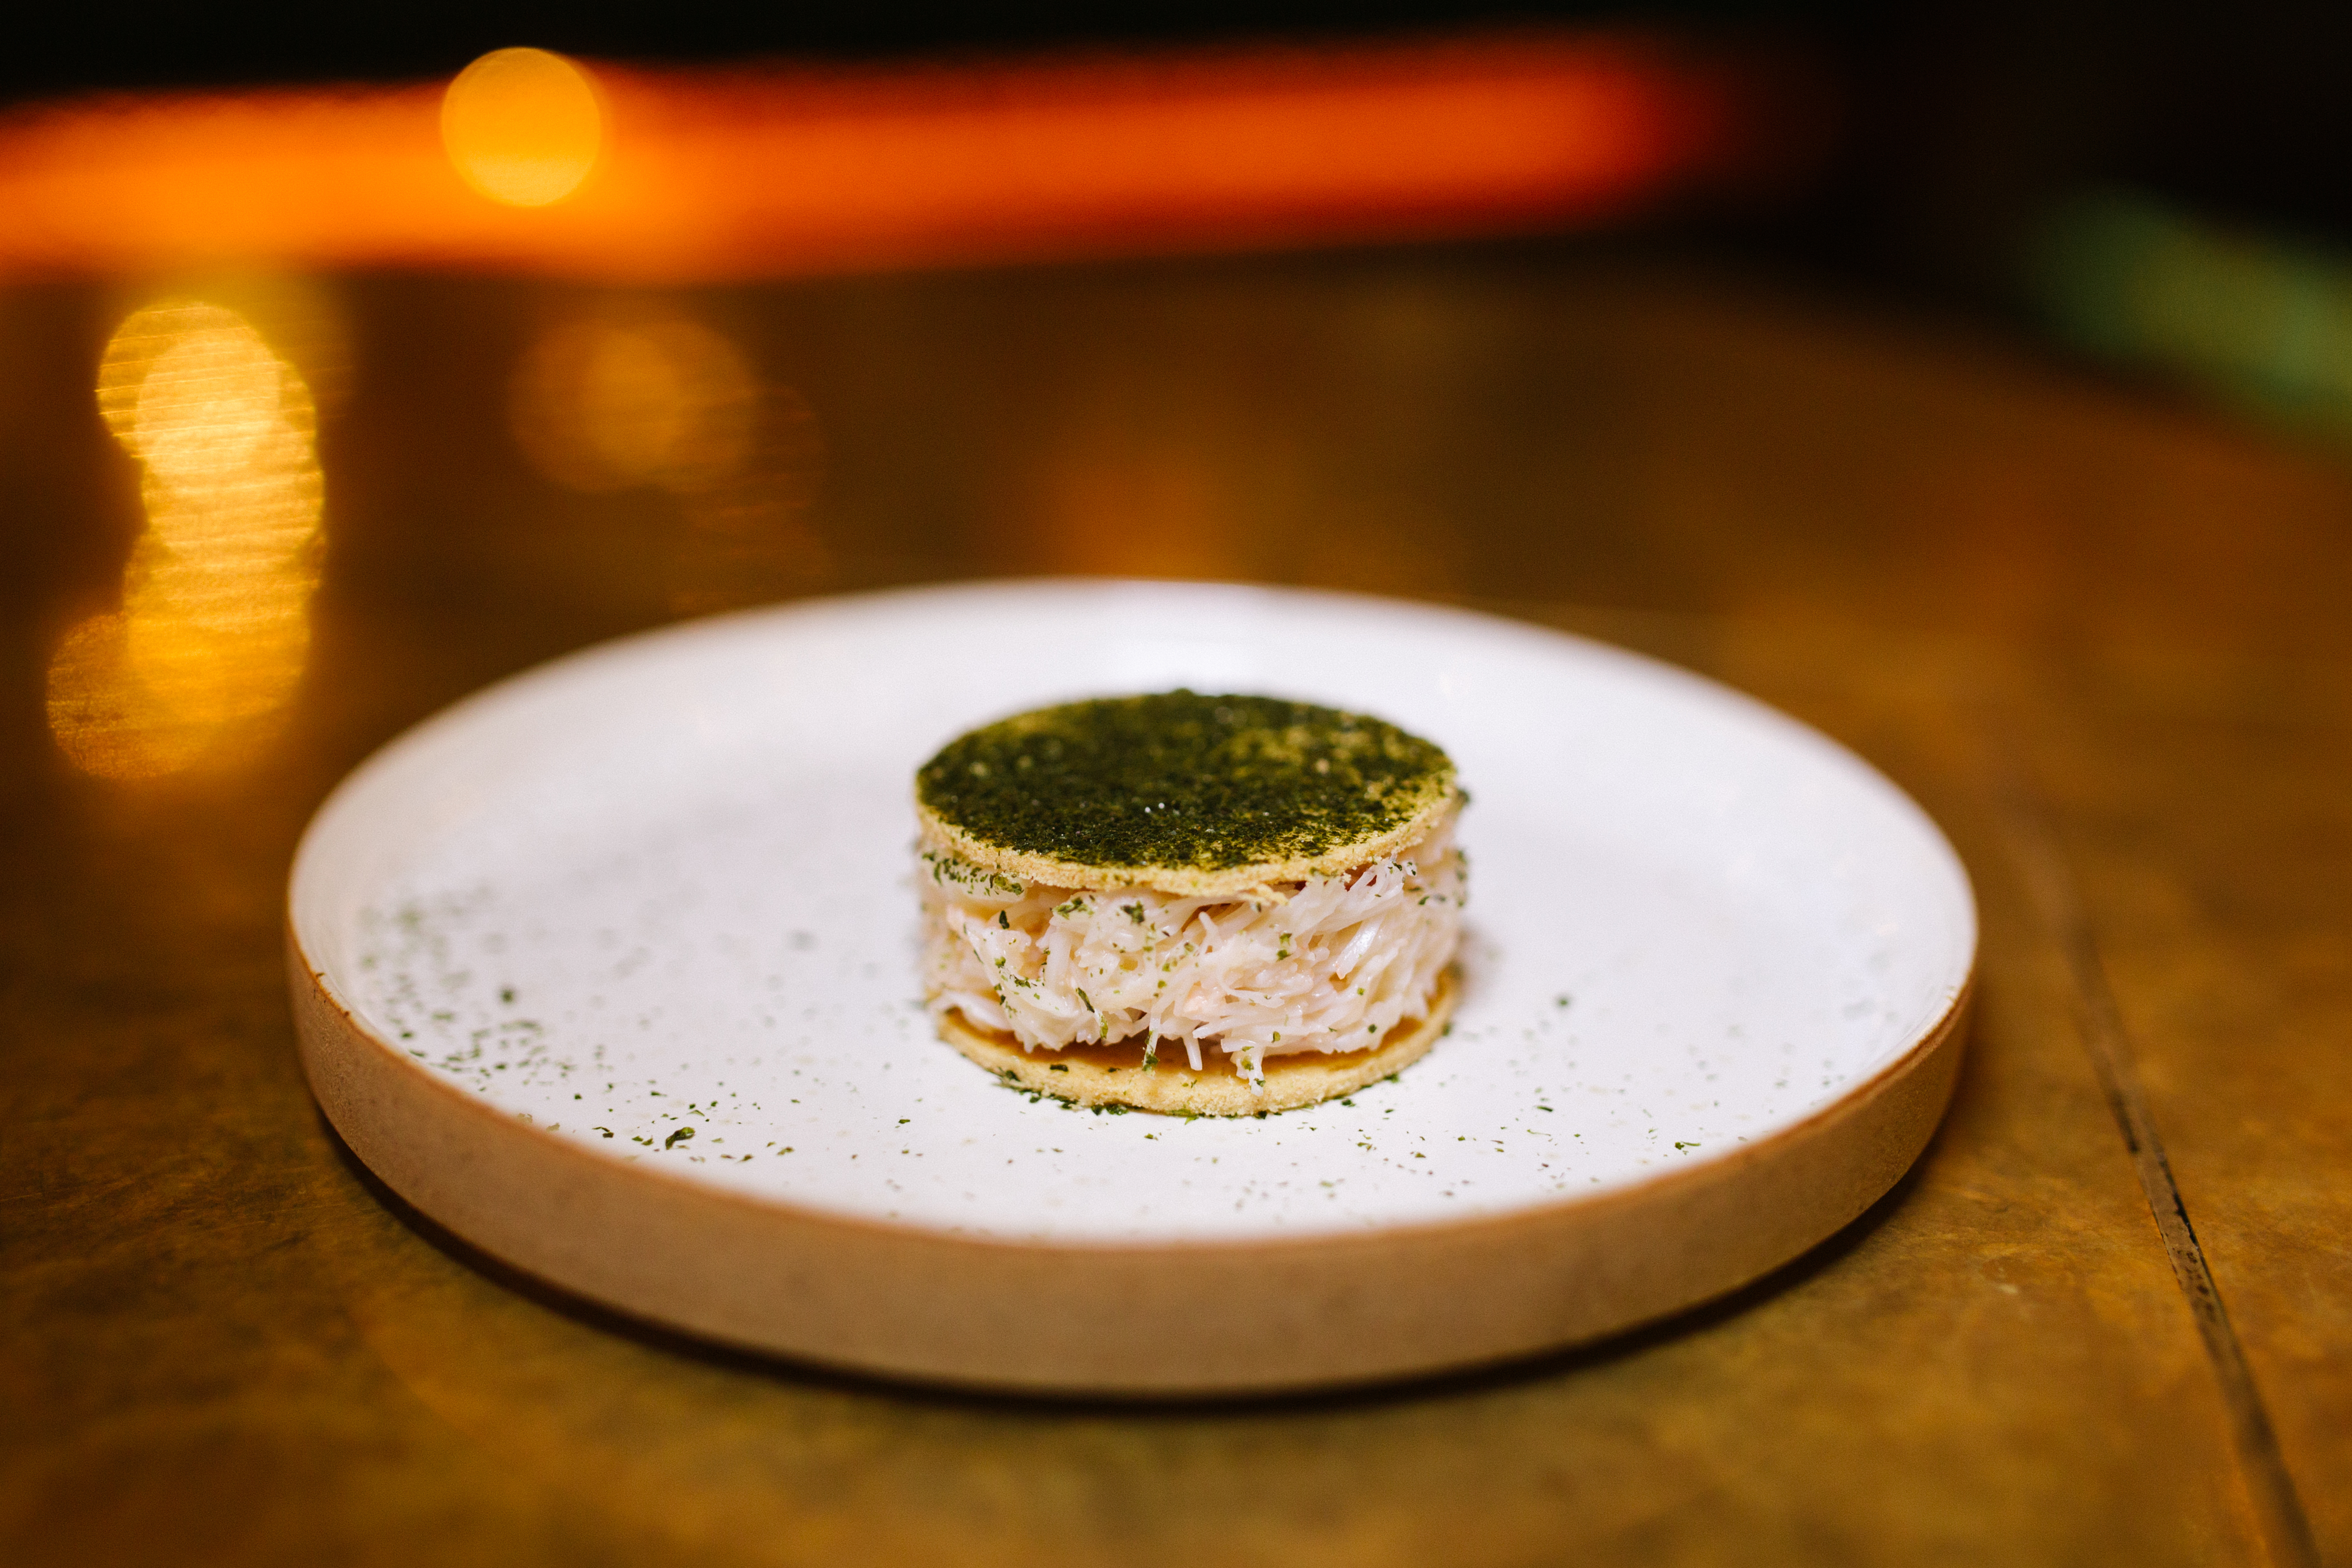 Brown crab with picked white crab, seaweed and brown butter at 1251, the new restaurant by Great British Menu chef James Cochran which Jay Rayner reviewed this week